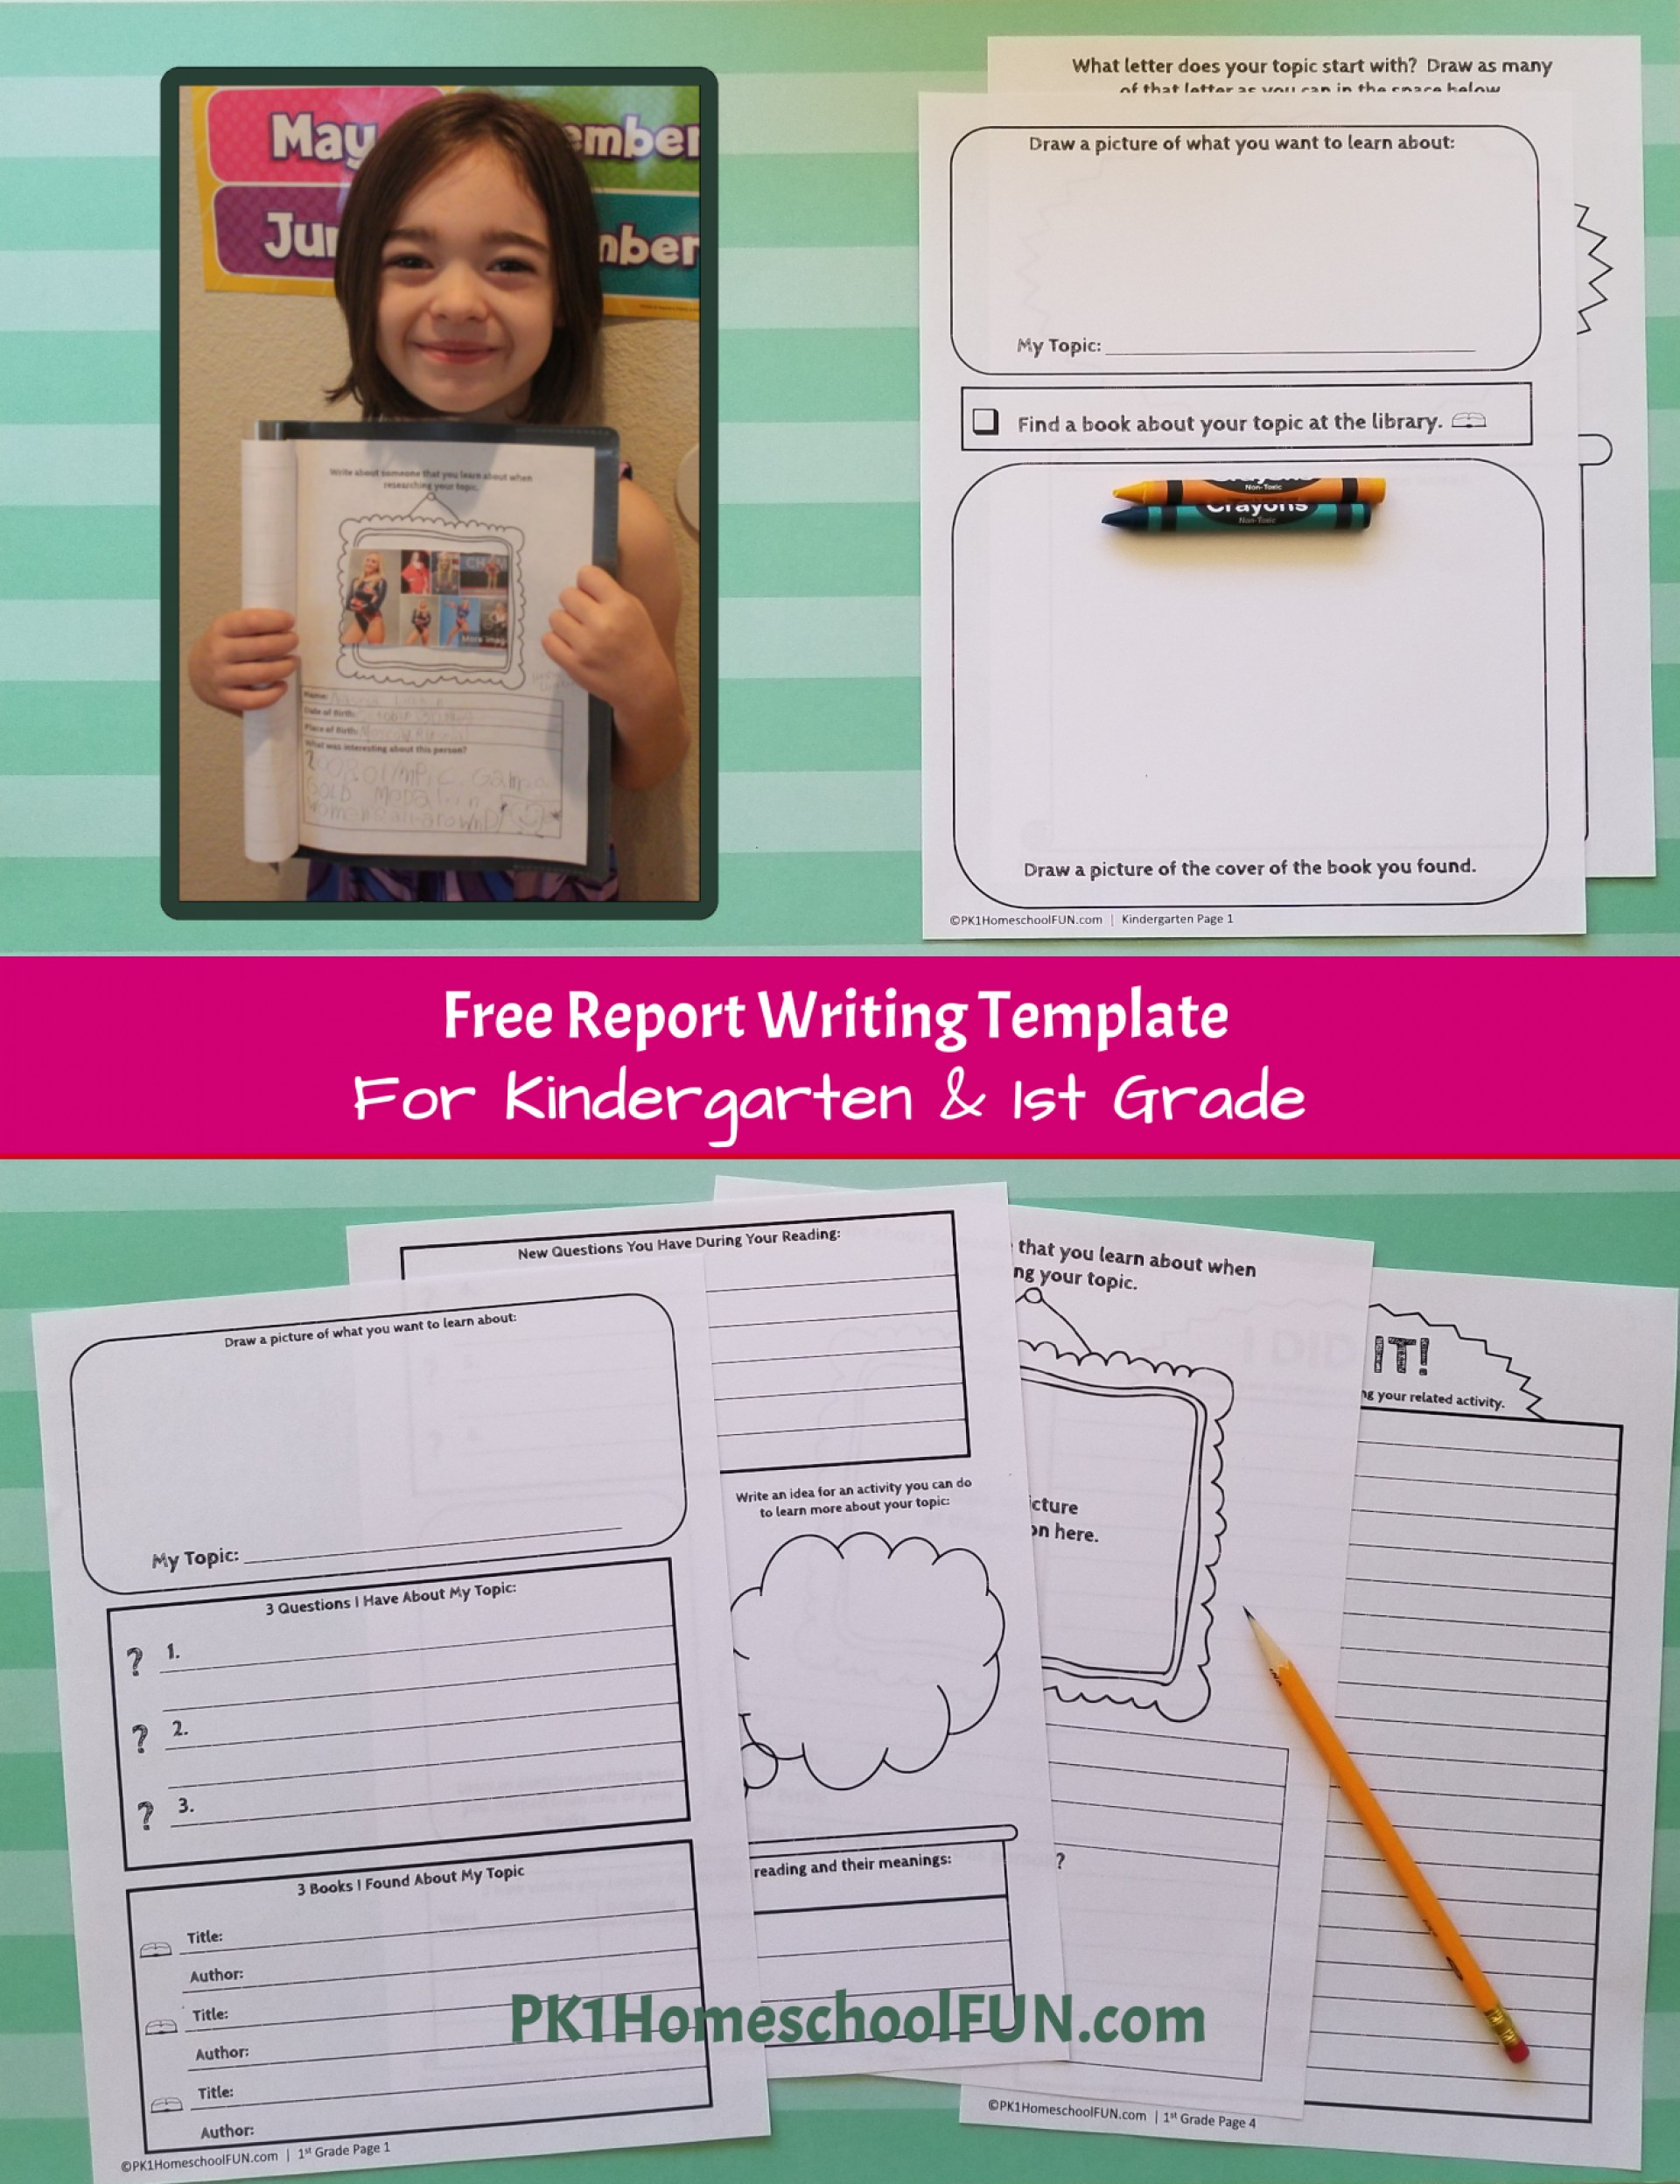 009 Free 1st Grade Writing Prompts Research Paper Template Help Me With My Stirring For 1920